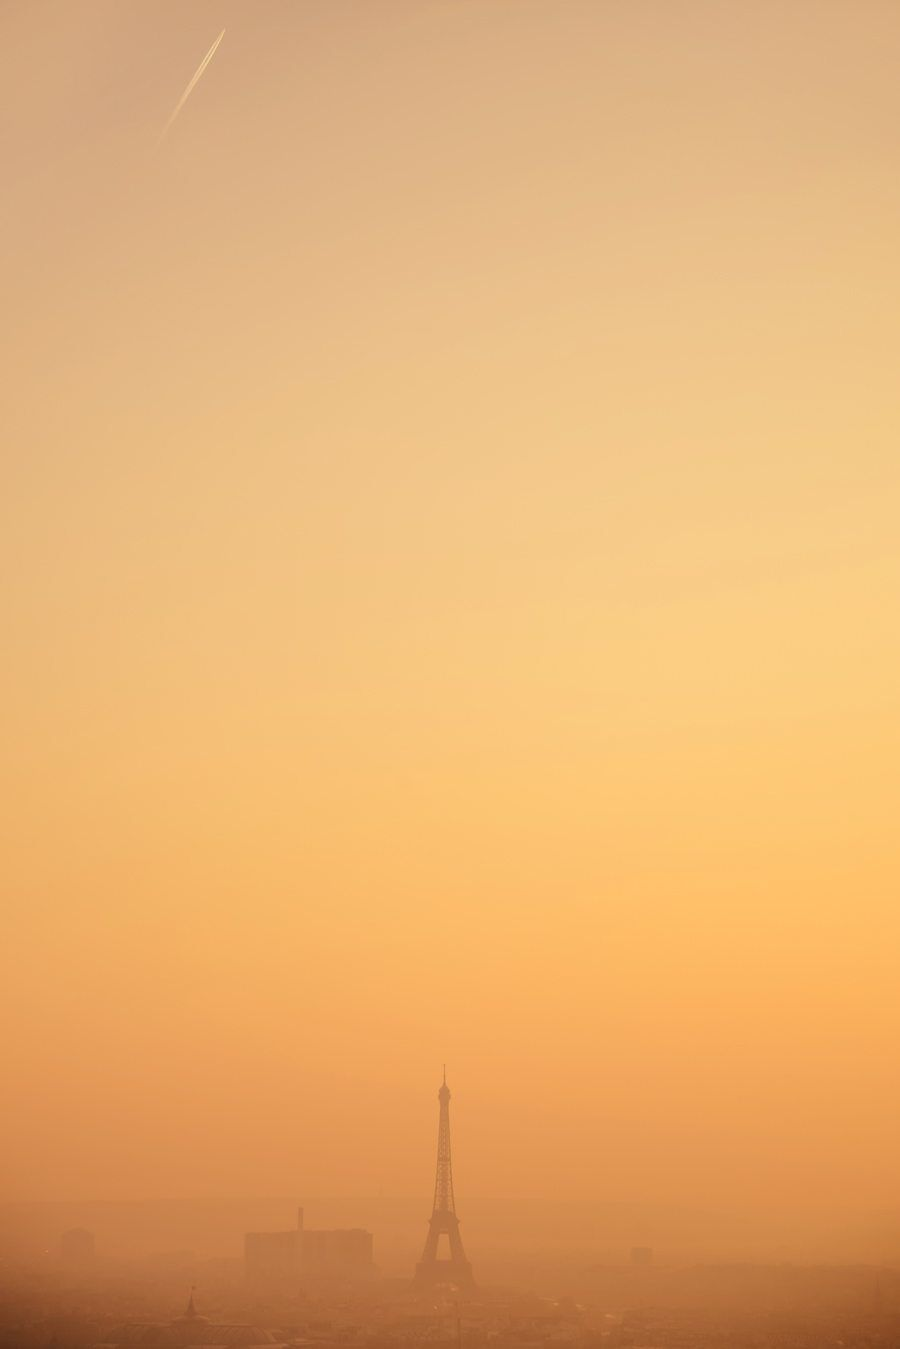 Negative Space – This term relates to the space around your subject and is a key element of artistic composition. Having little to distract from your chosen monument allows all attention to be directed toward your subject and therefore highlight it within your photograph. Here the warm hues of the sunset sky draw down toward the majestic Eiffel Tower.